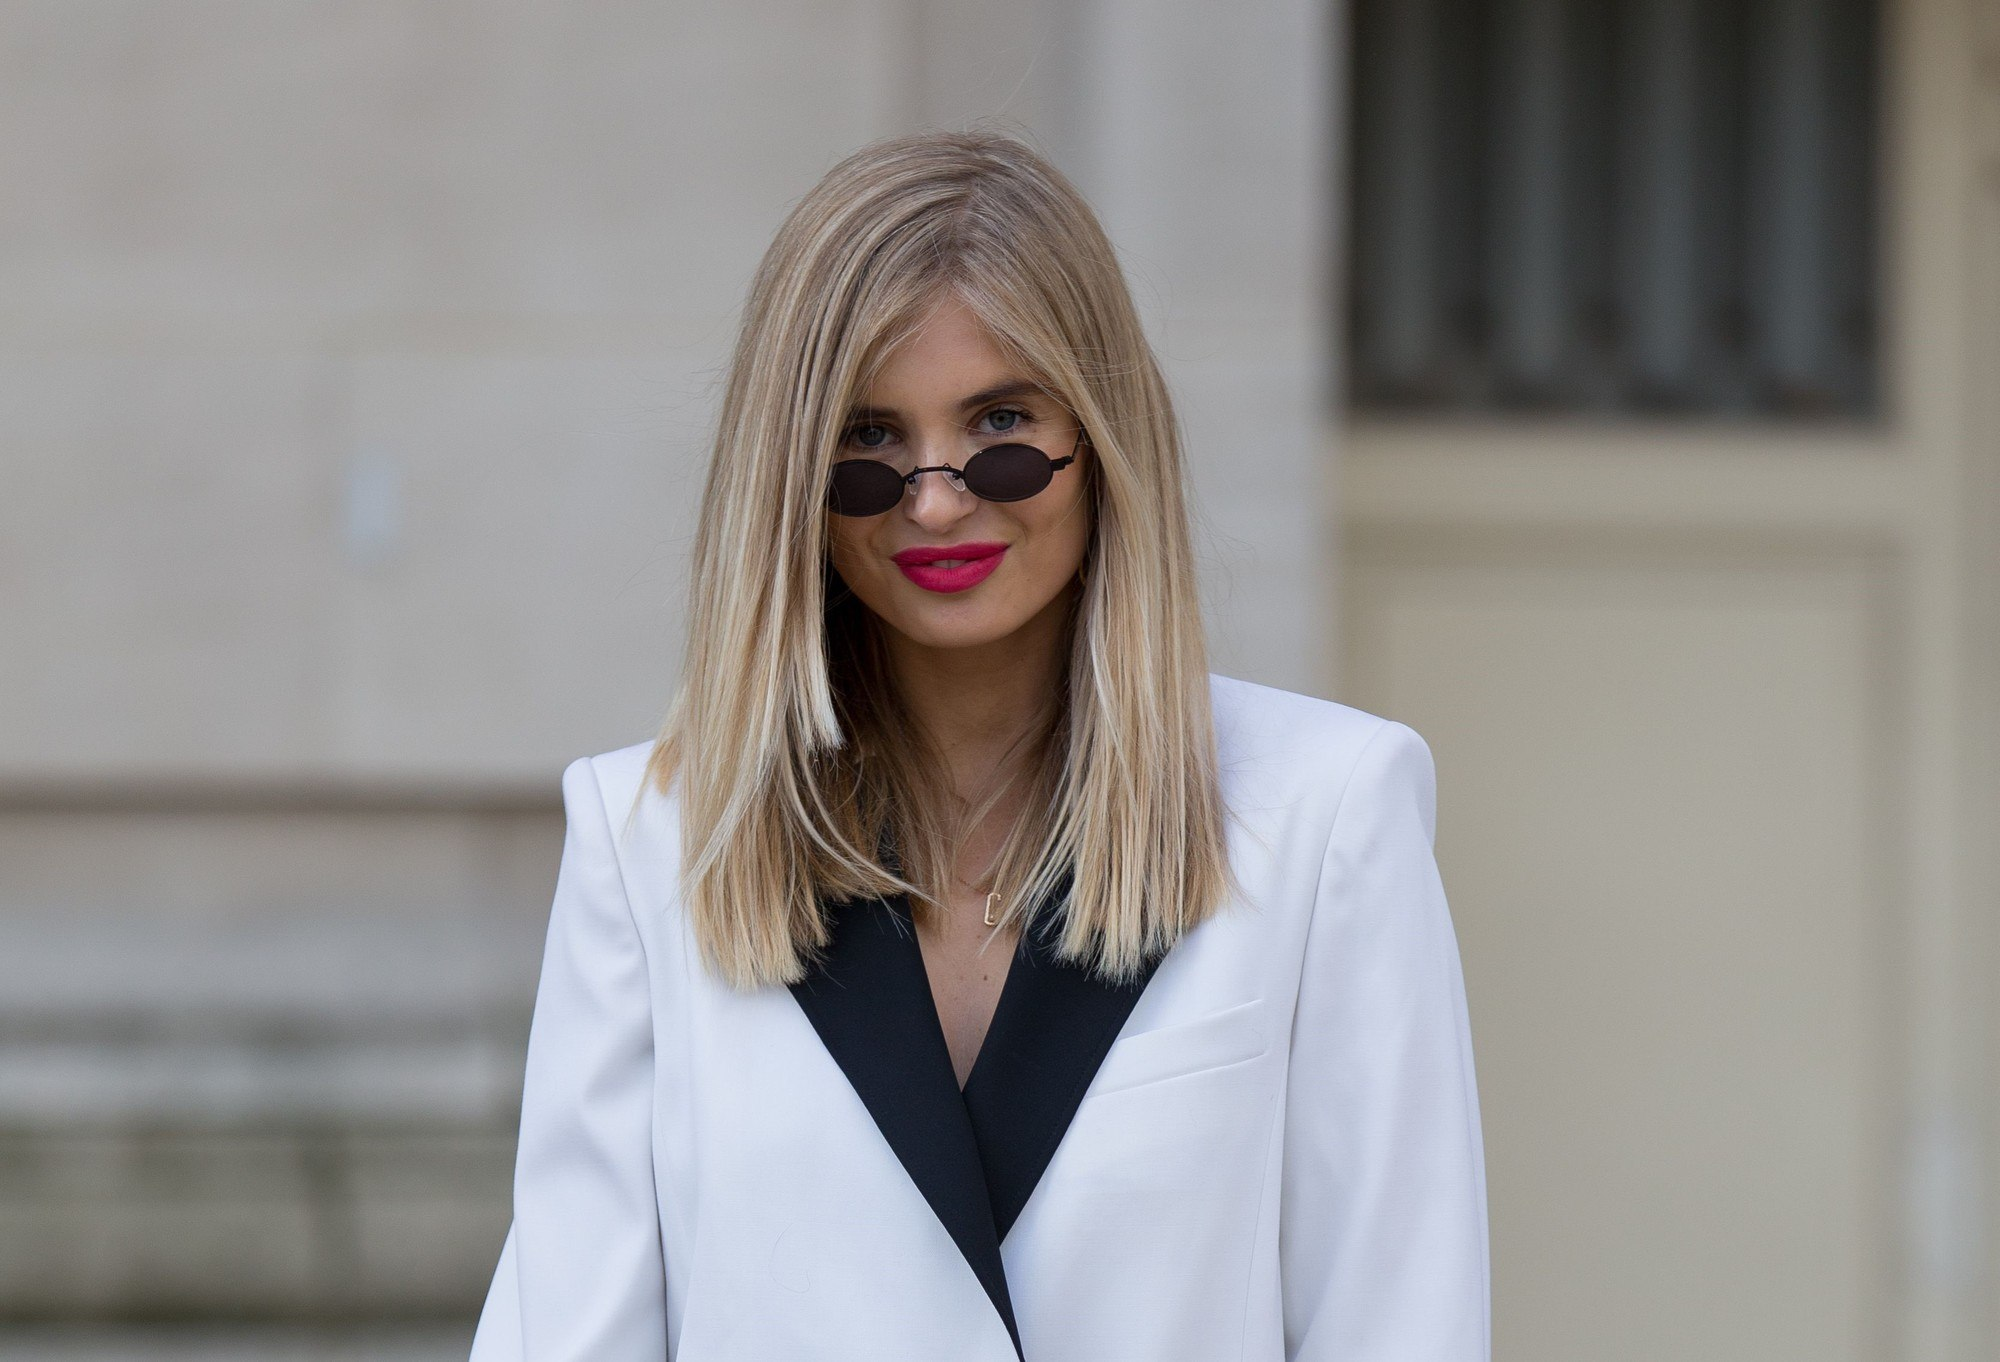 close up shot of a street style model with a natural blonde roots melted into a ashy blonde hair colour, wearing a white suit jacket and sunglasses, posing outside